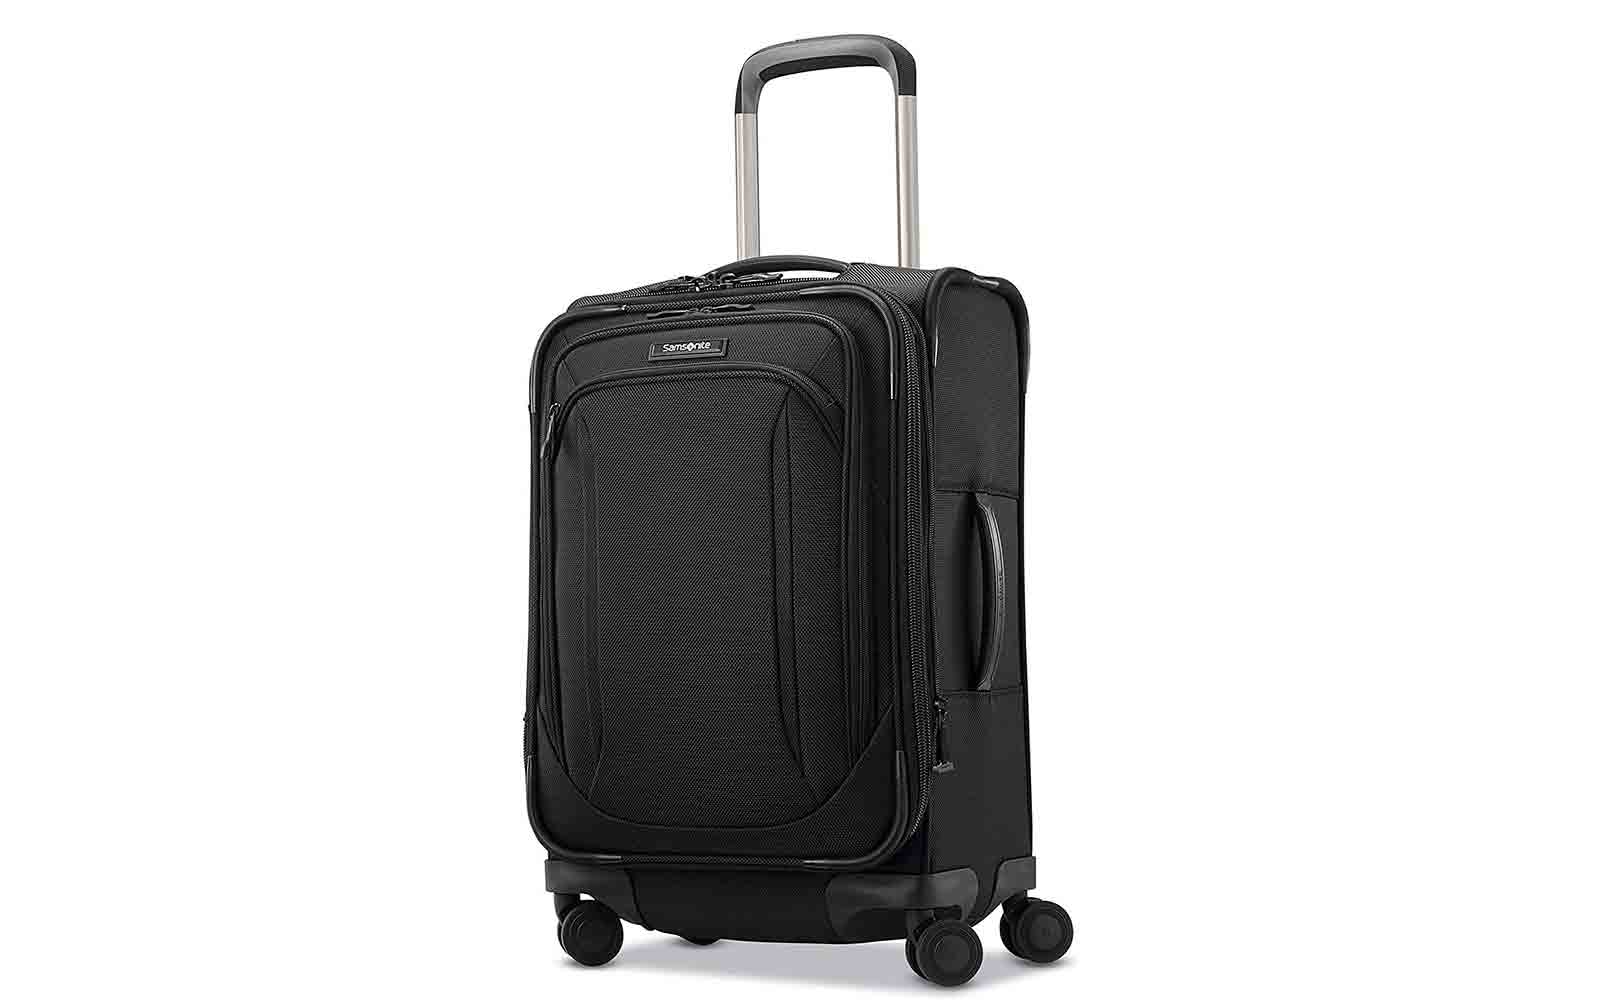 Samsonite Lineate Softside Luggage